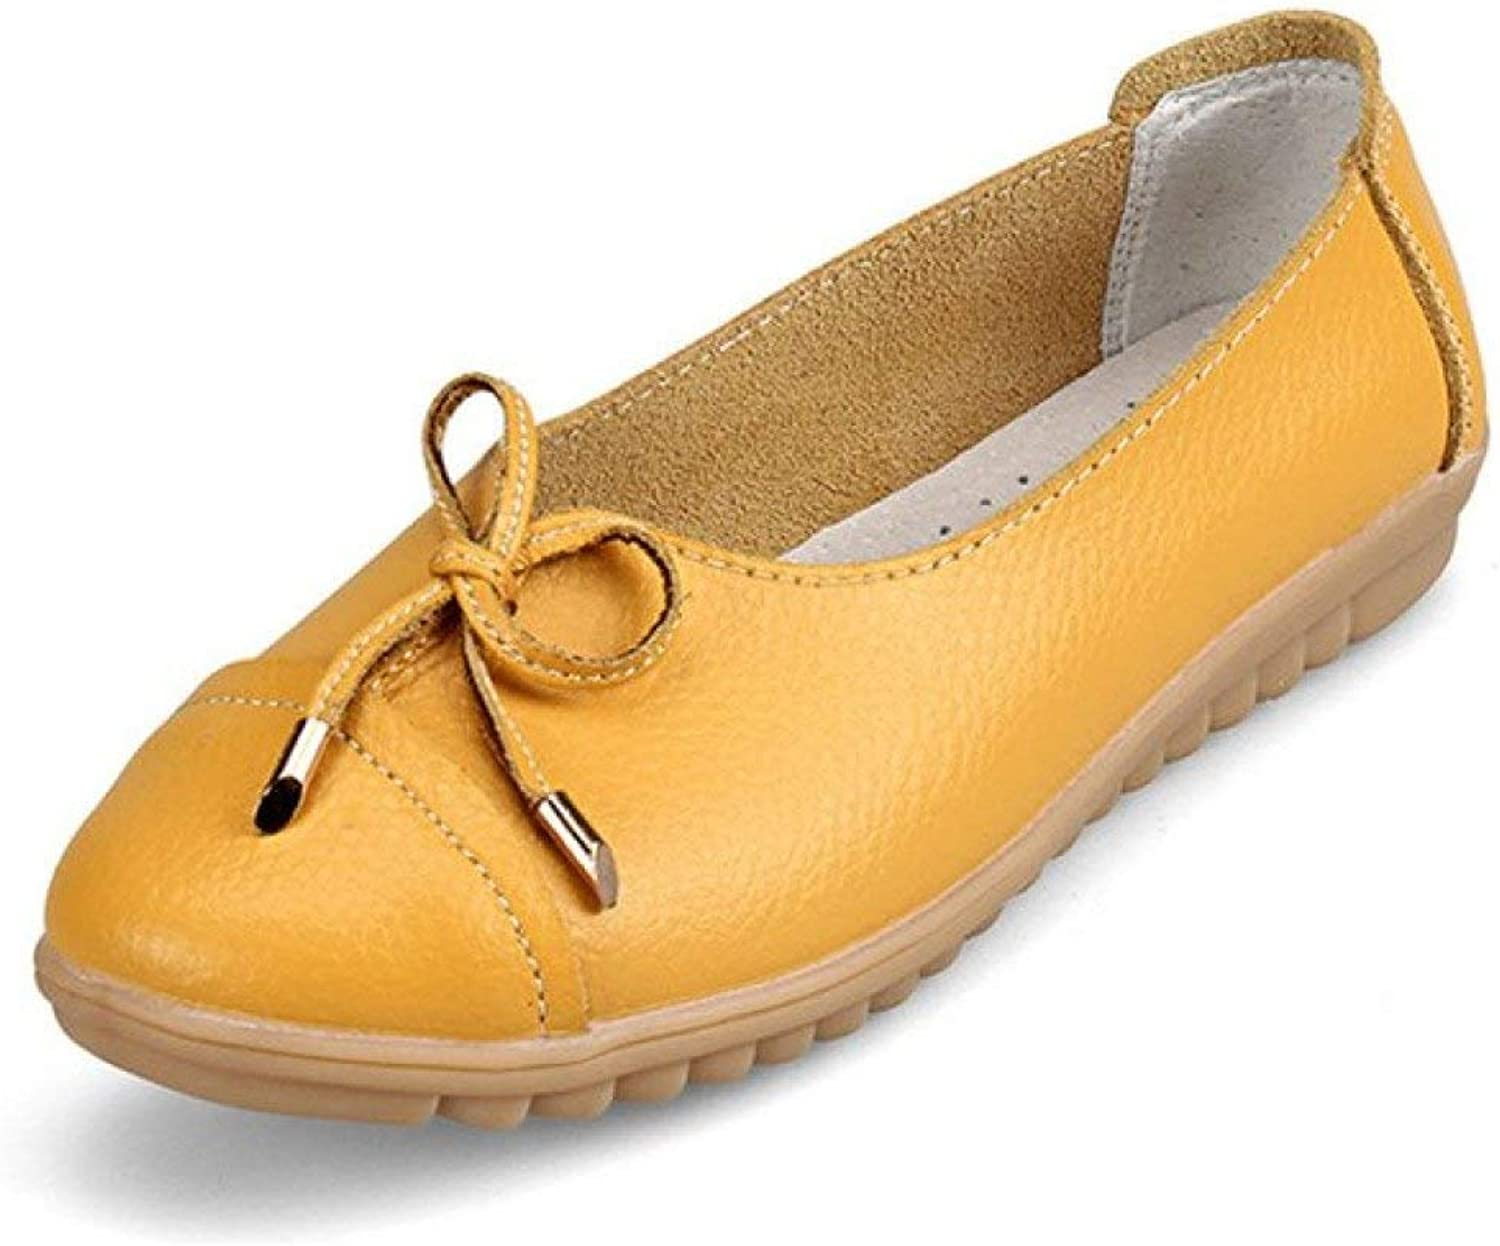 Women's Bowknot Pointed Toe Loafer shoes Slip On Casual Driving Moccasins Flats